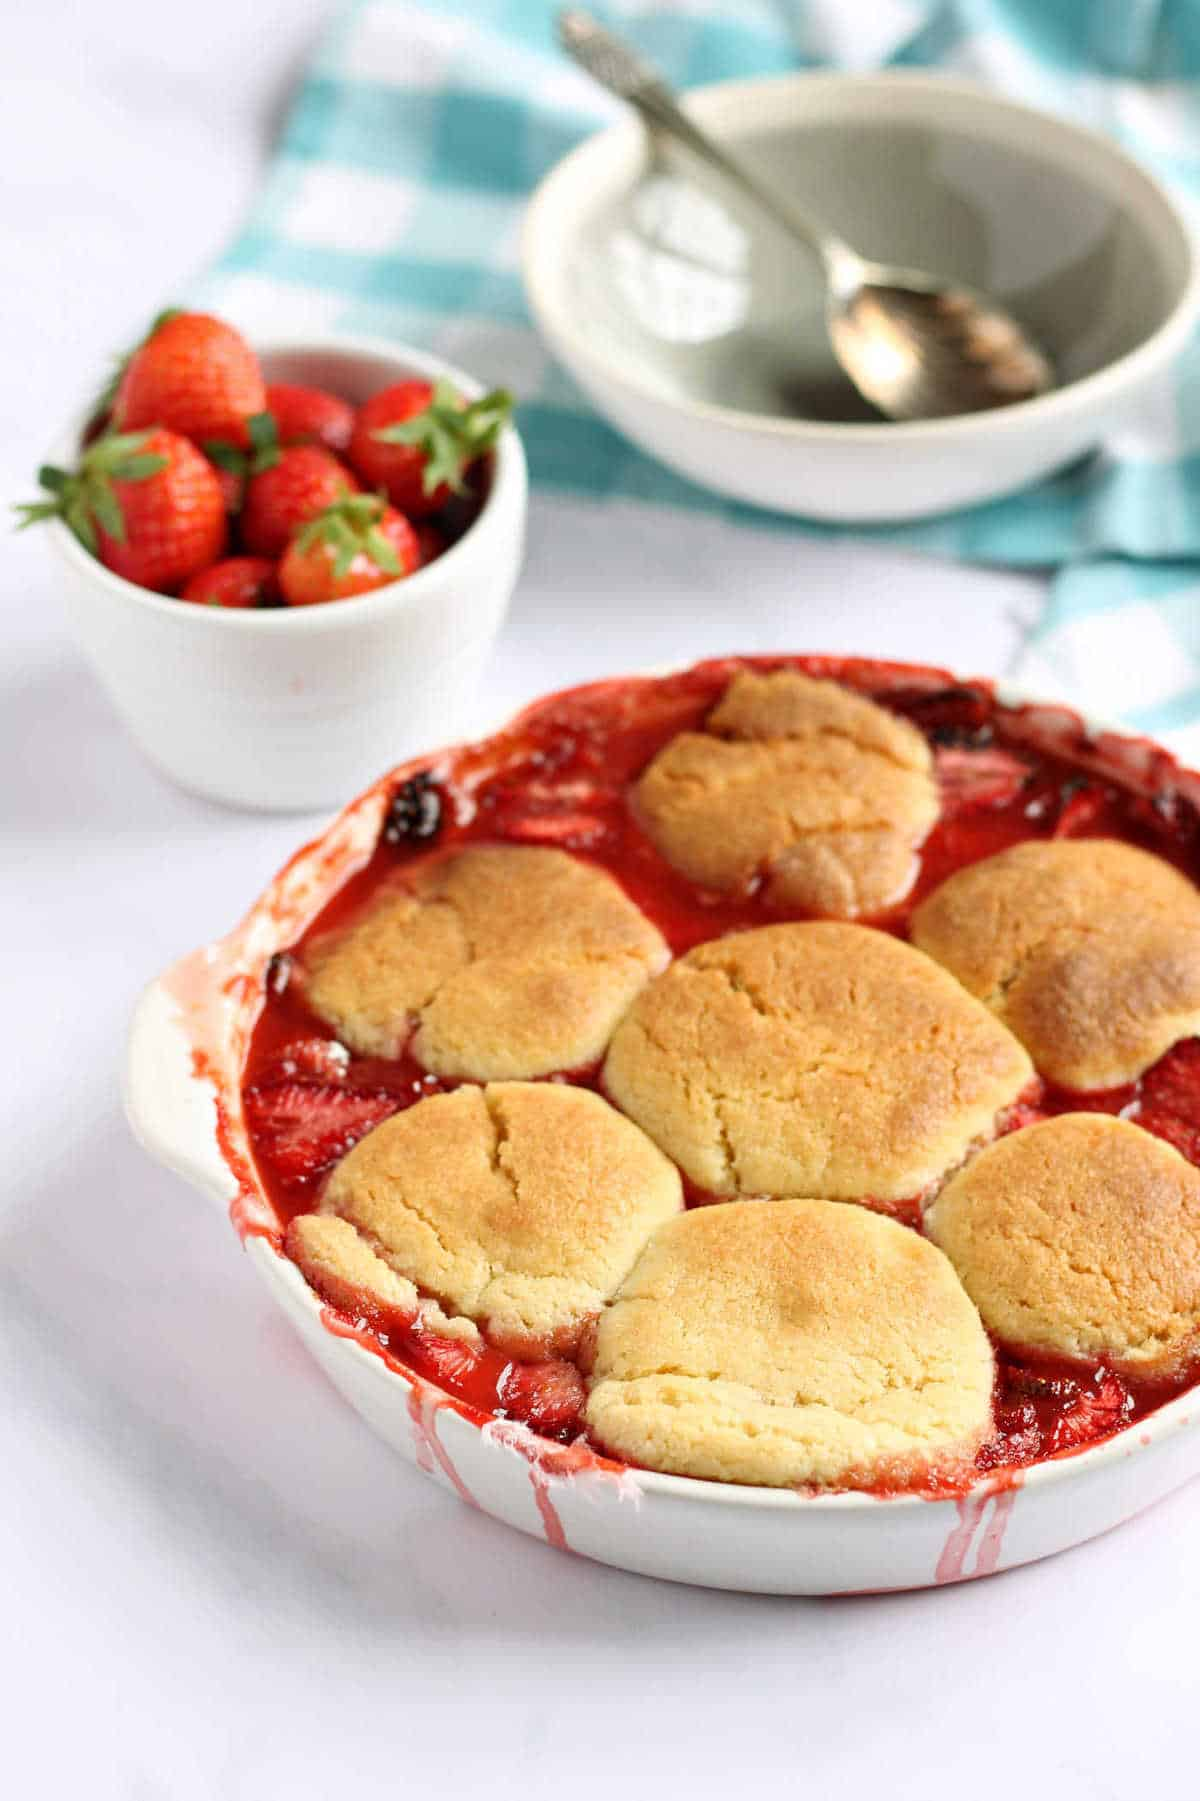 This easy strawberry cobbler recipe is a delicious summery dessert, that celebrates strawberry season in style. The golden cobbler topping encases sweet juicy strawberries underneath. Serve warm with ice-cream for a taste of summer, whatever the time of year.